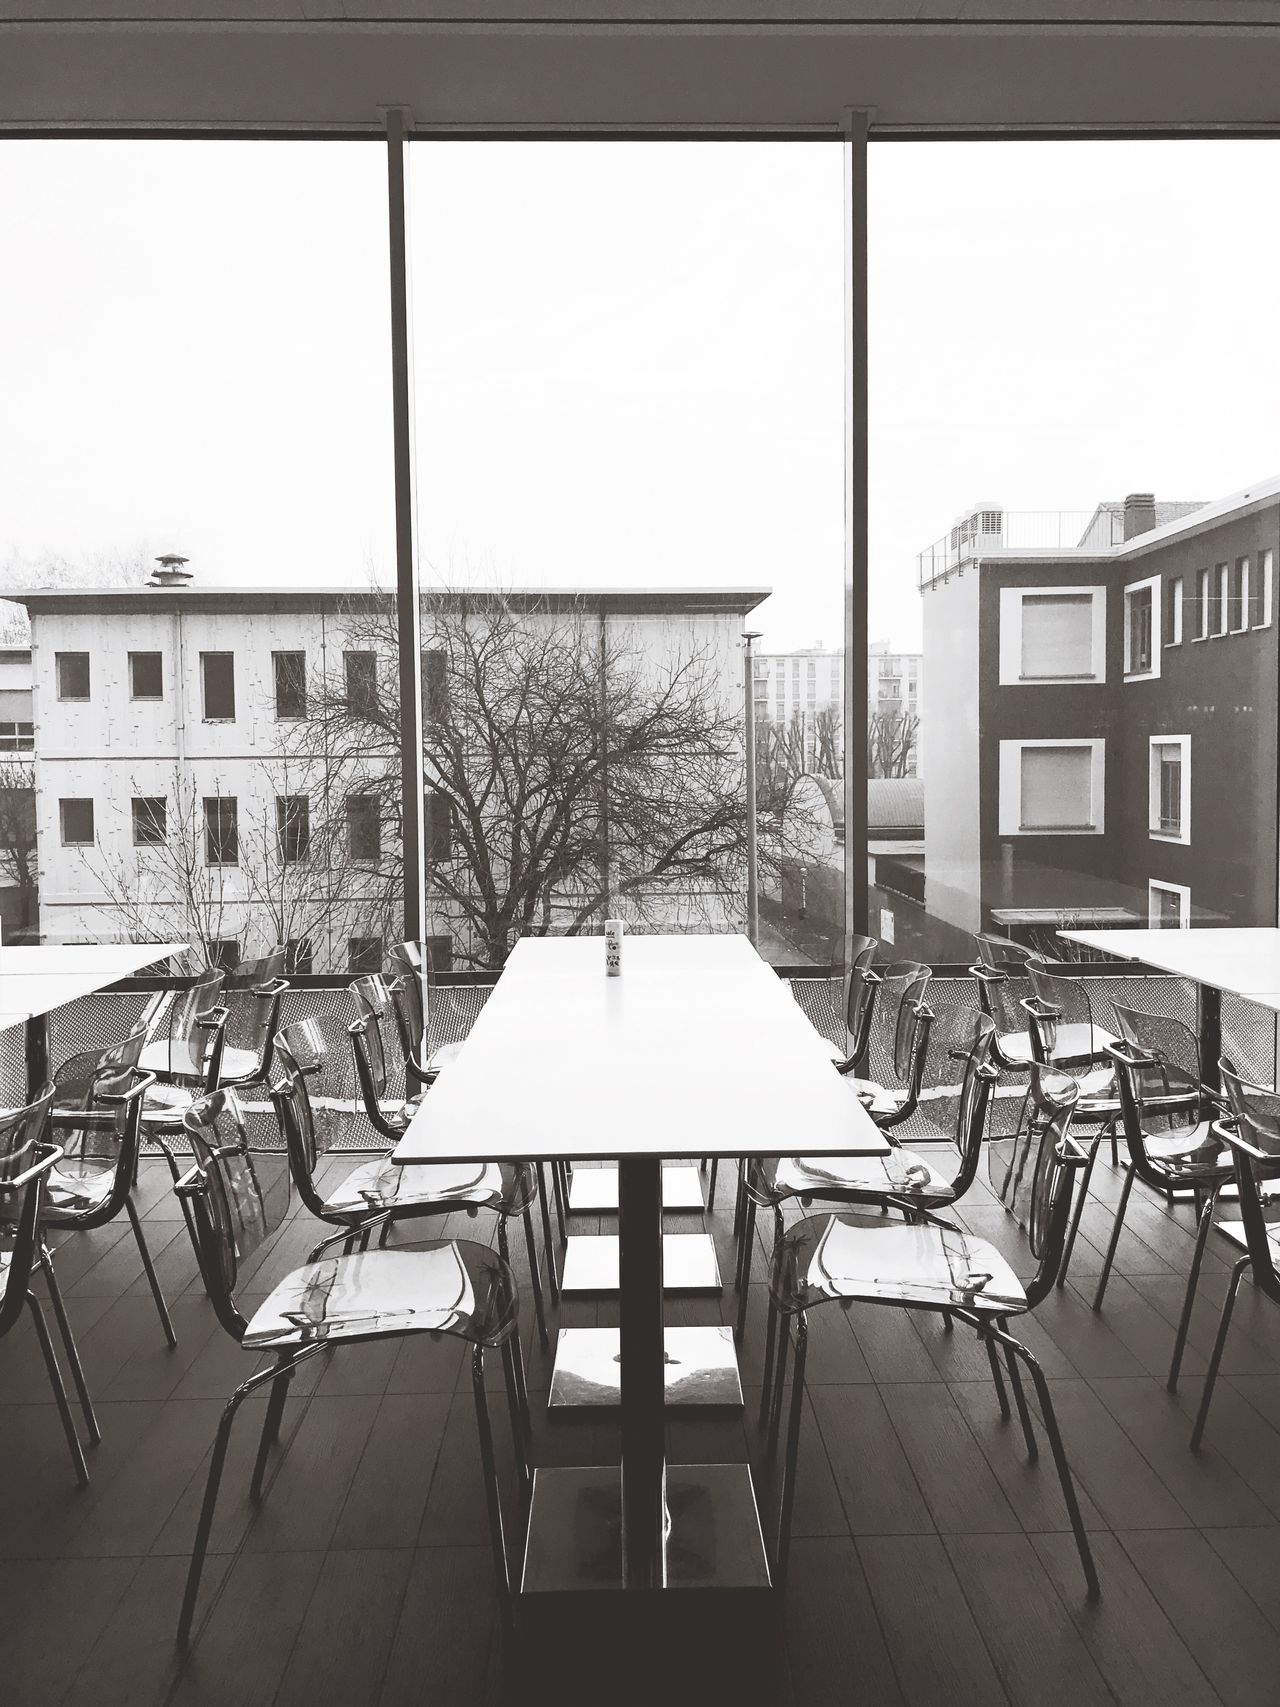 Chair Table Window Architecture No People Indoors  Modern Day Library Sky Sliding Door